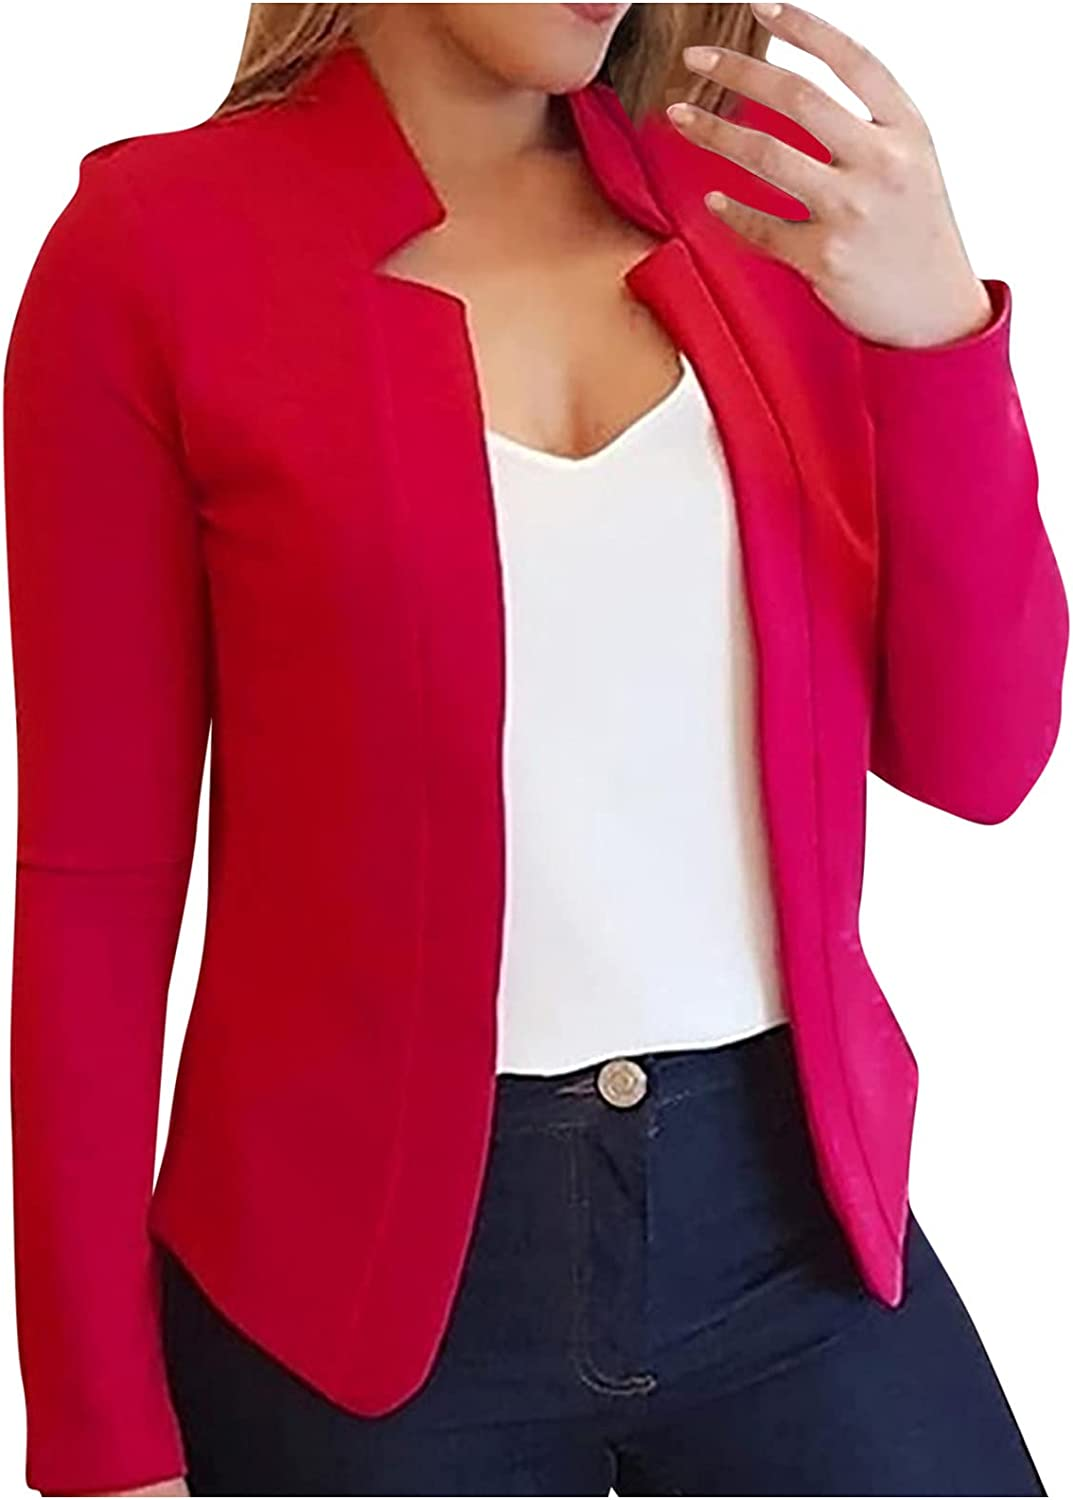 Women's Solid Color Casual Fashion Jacket Coat Long-Sleeved Cardigan Jacket Coat Top